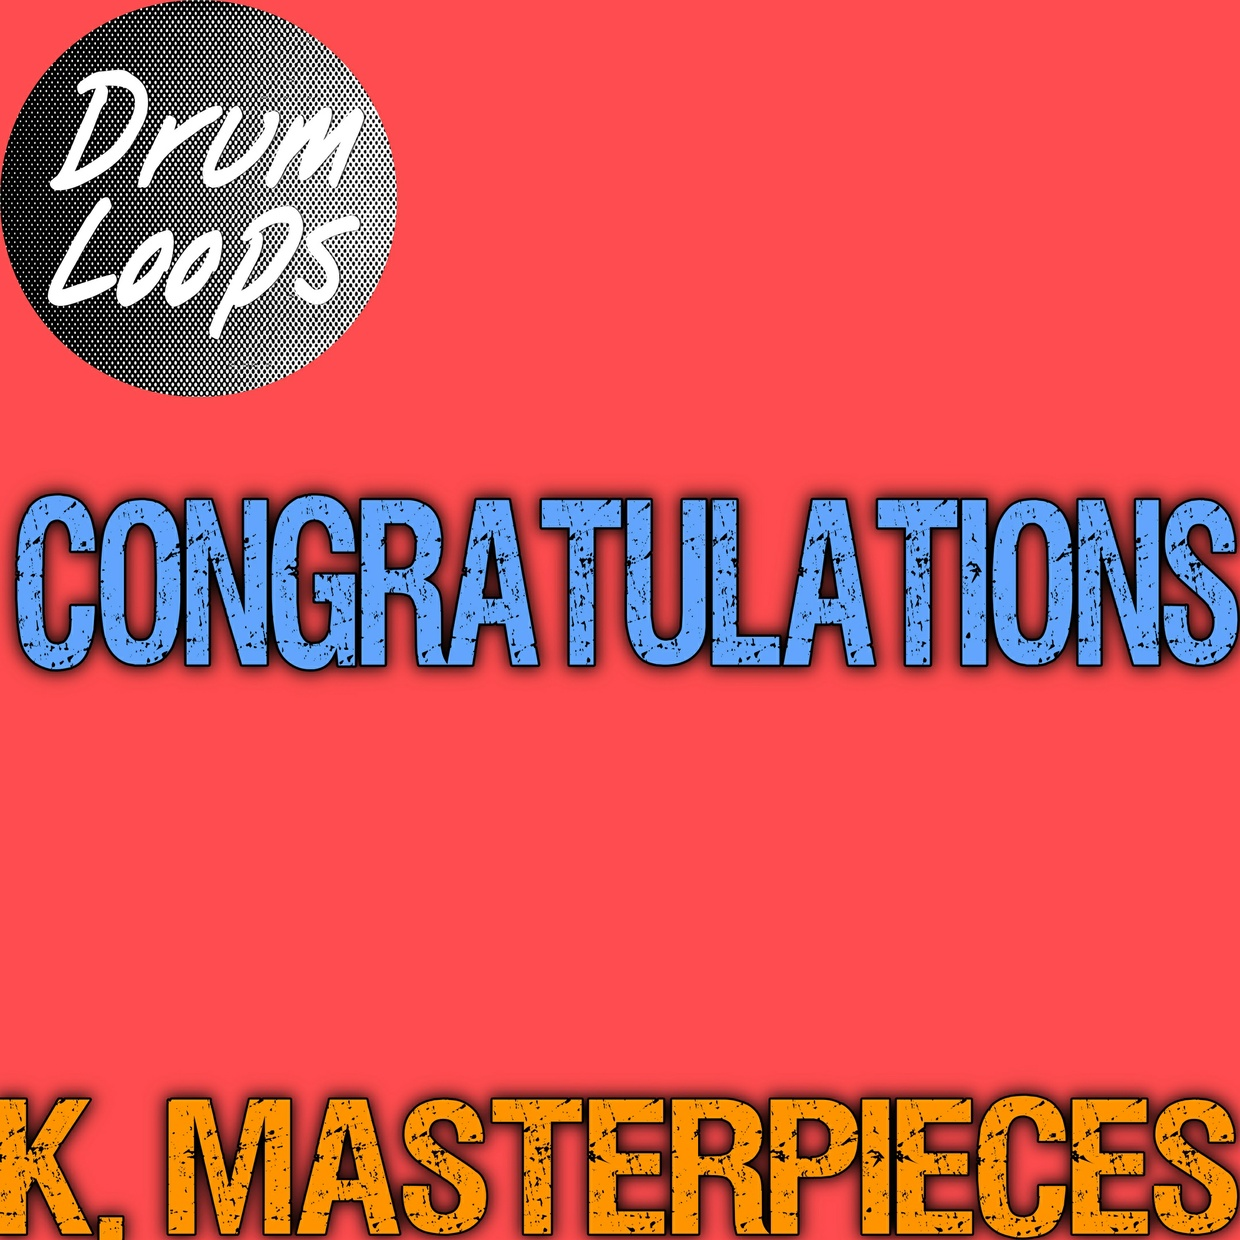 Congratulations - Drum Loops - Inspired by Post Malone & Quavo